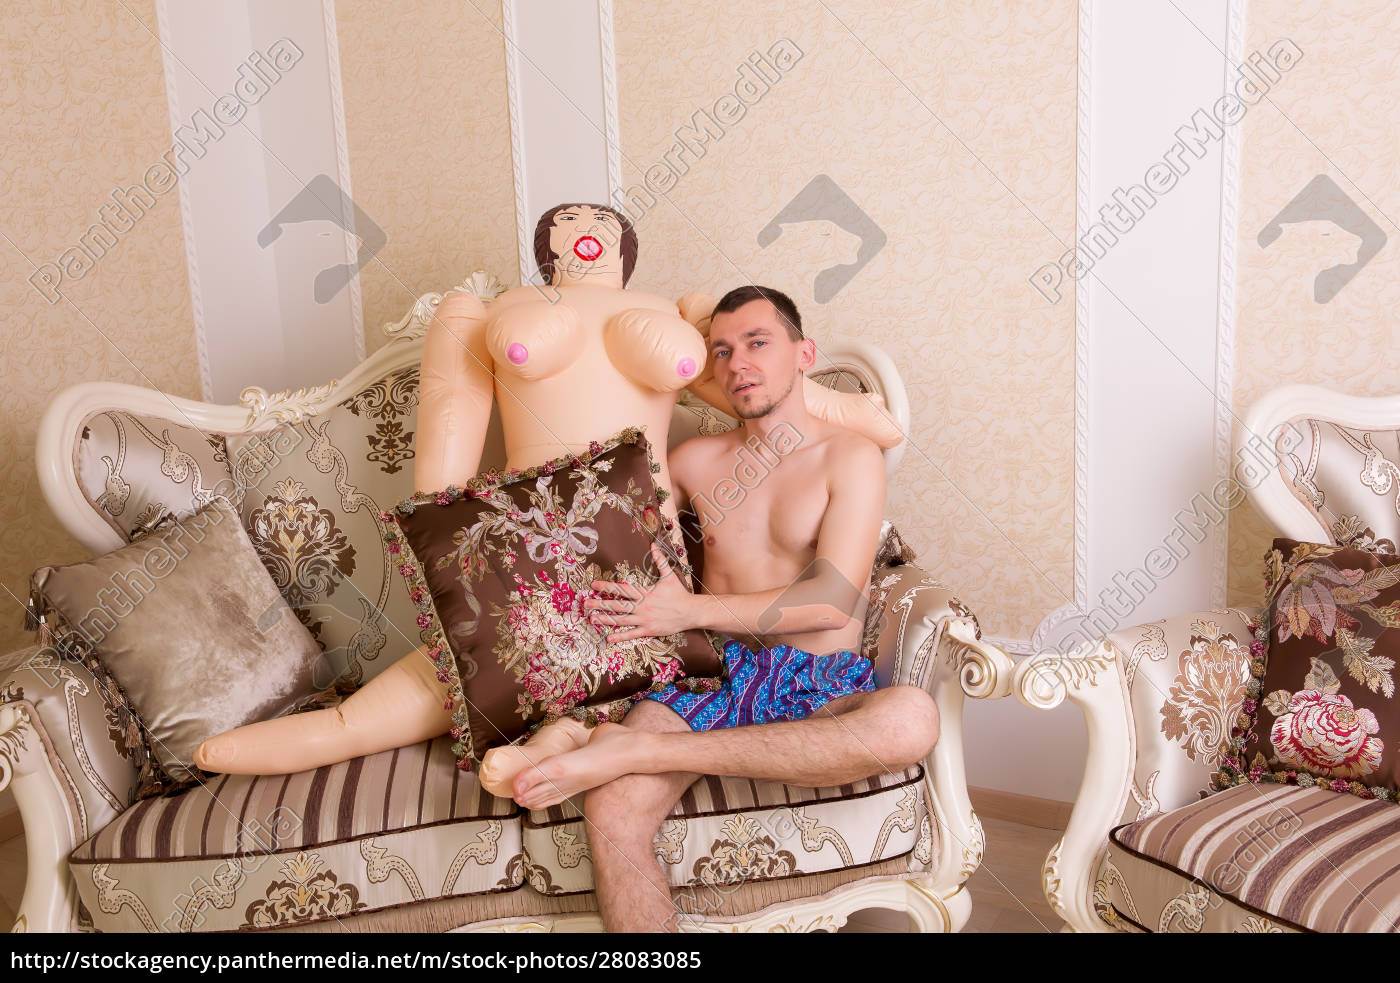 naked, man, with, sex, doll, sits - 28083085